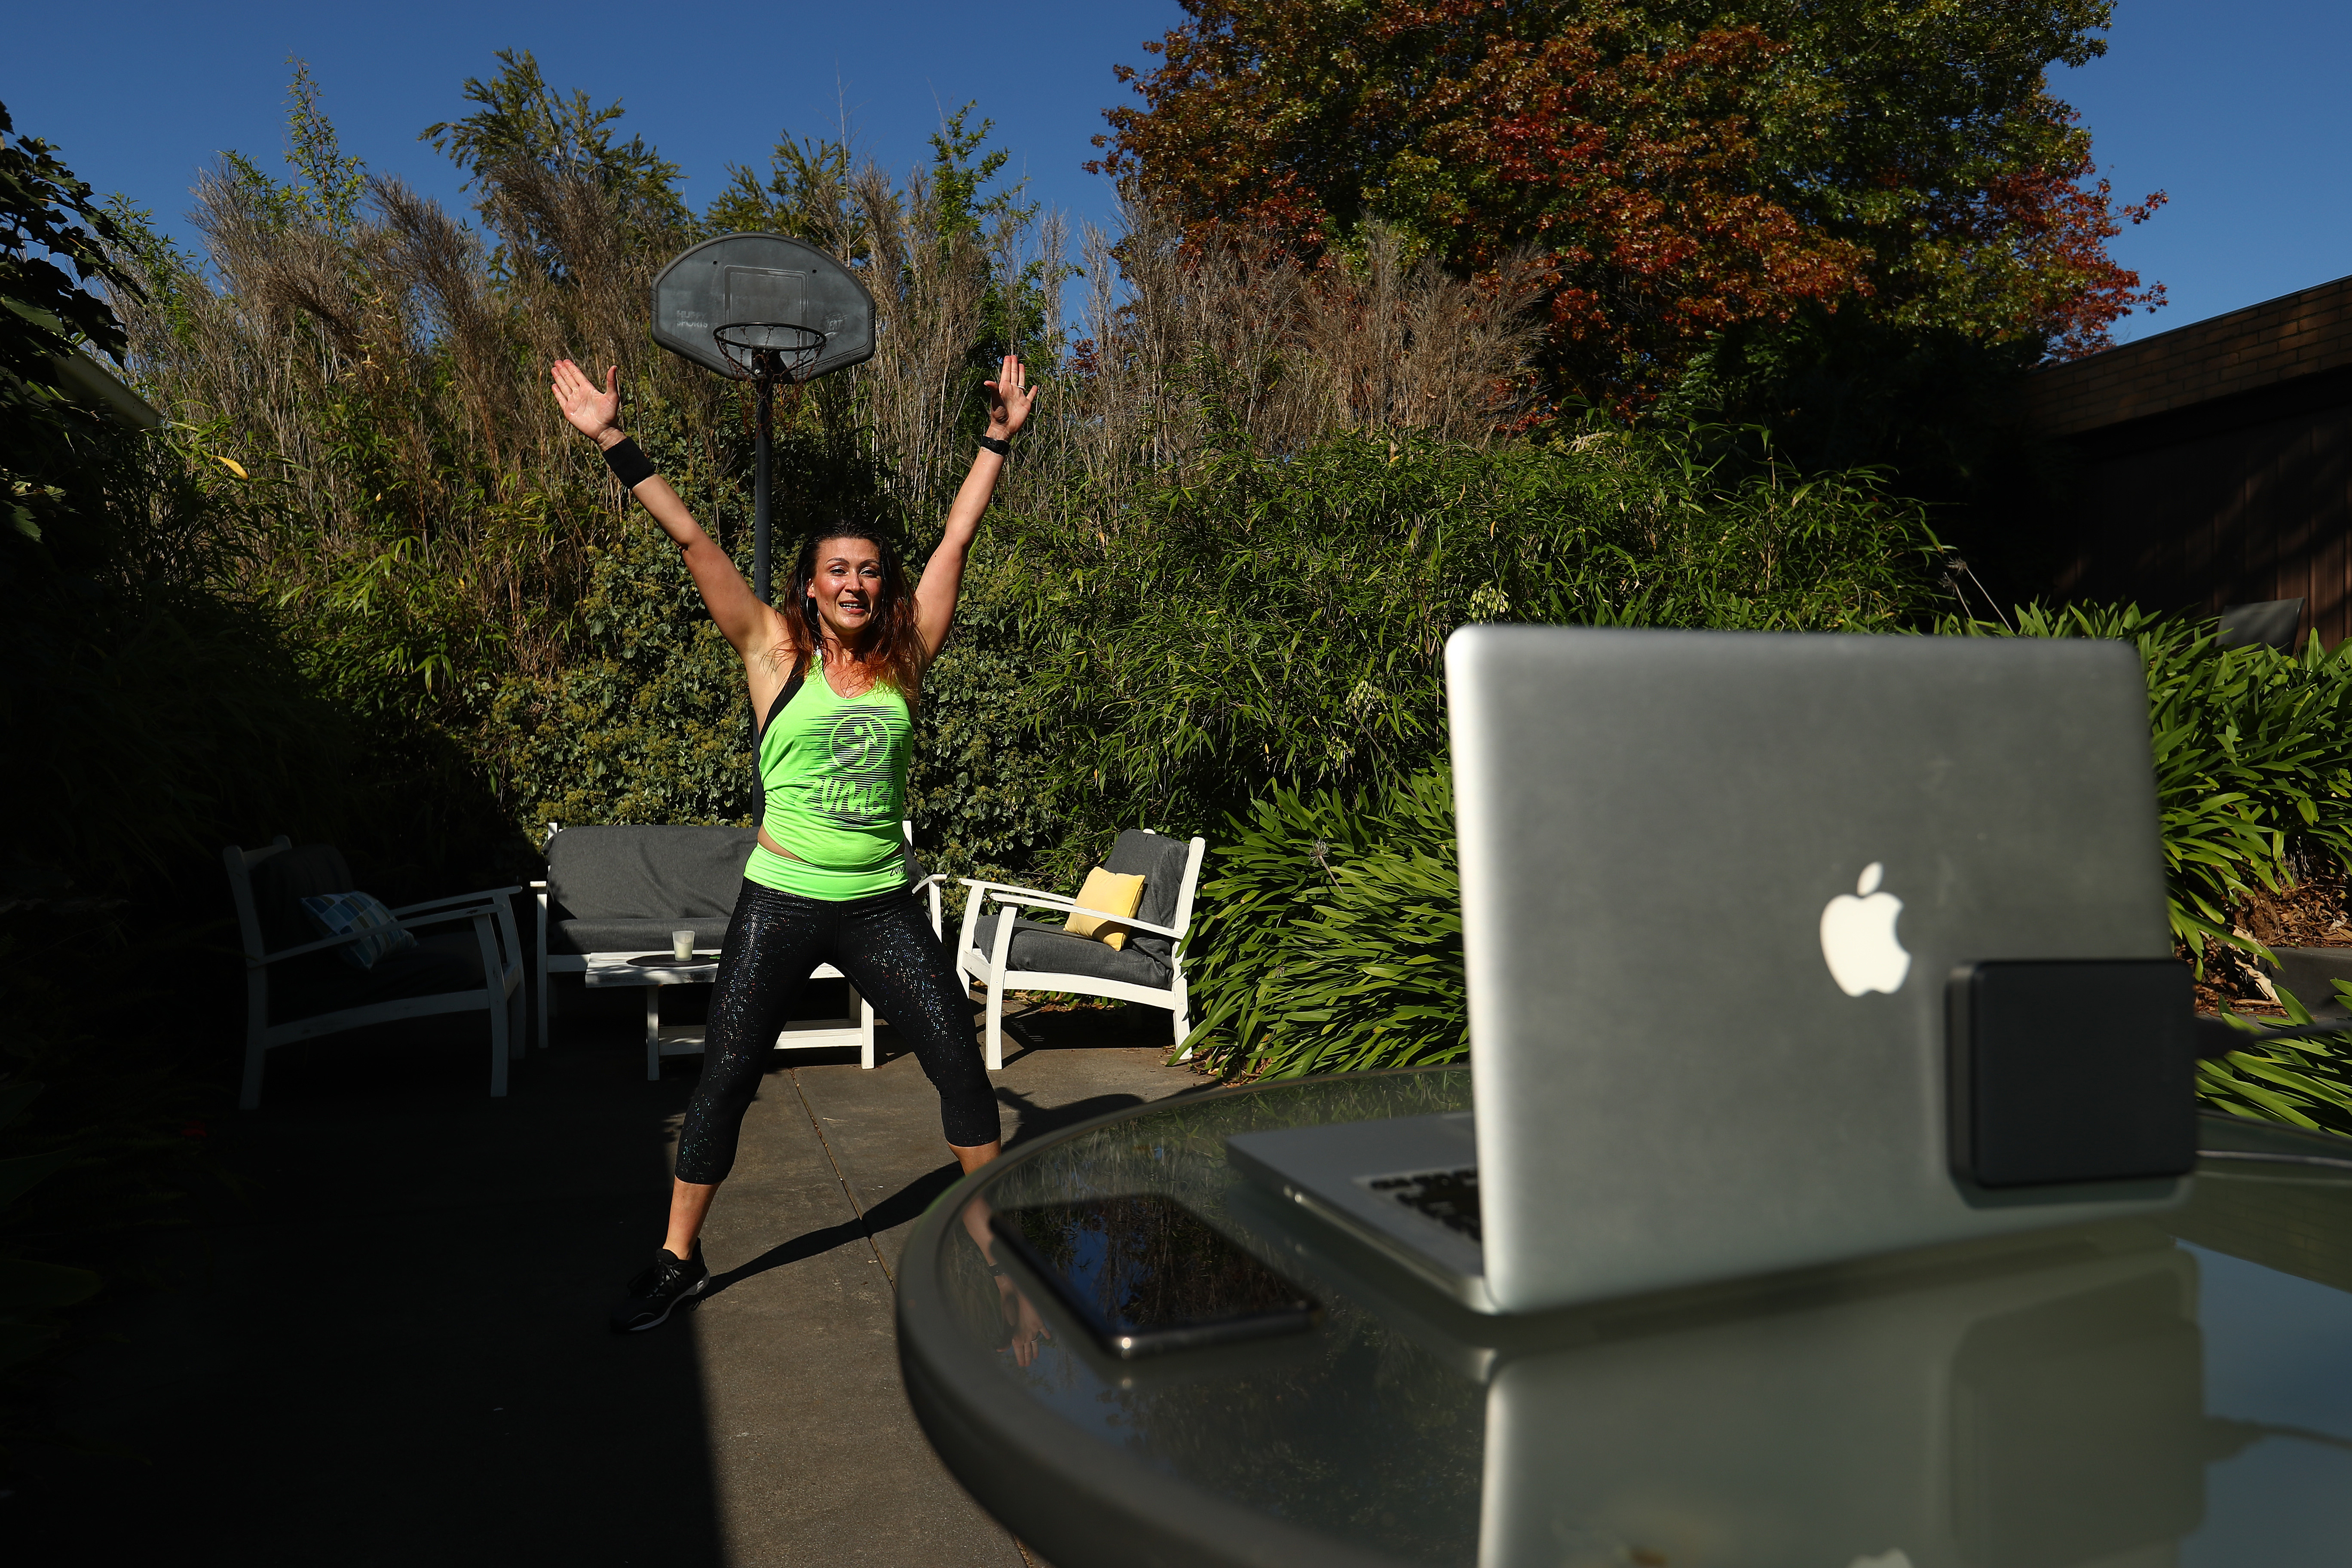 Zumba instructor Julia Basa leads an online session from her backyard in Melbourne, Australia, on April 9.